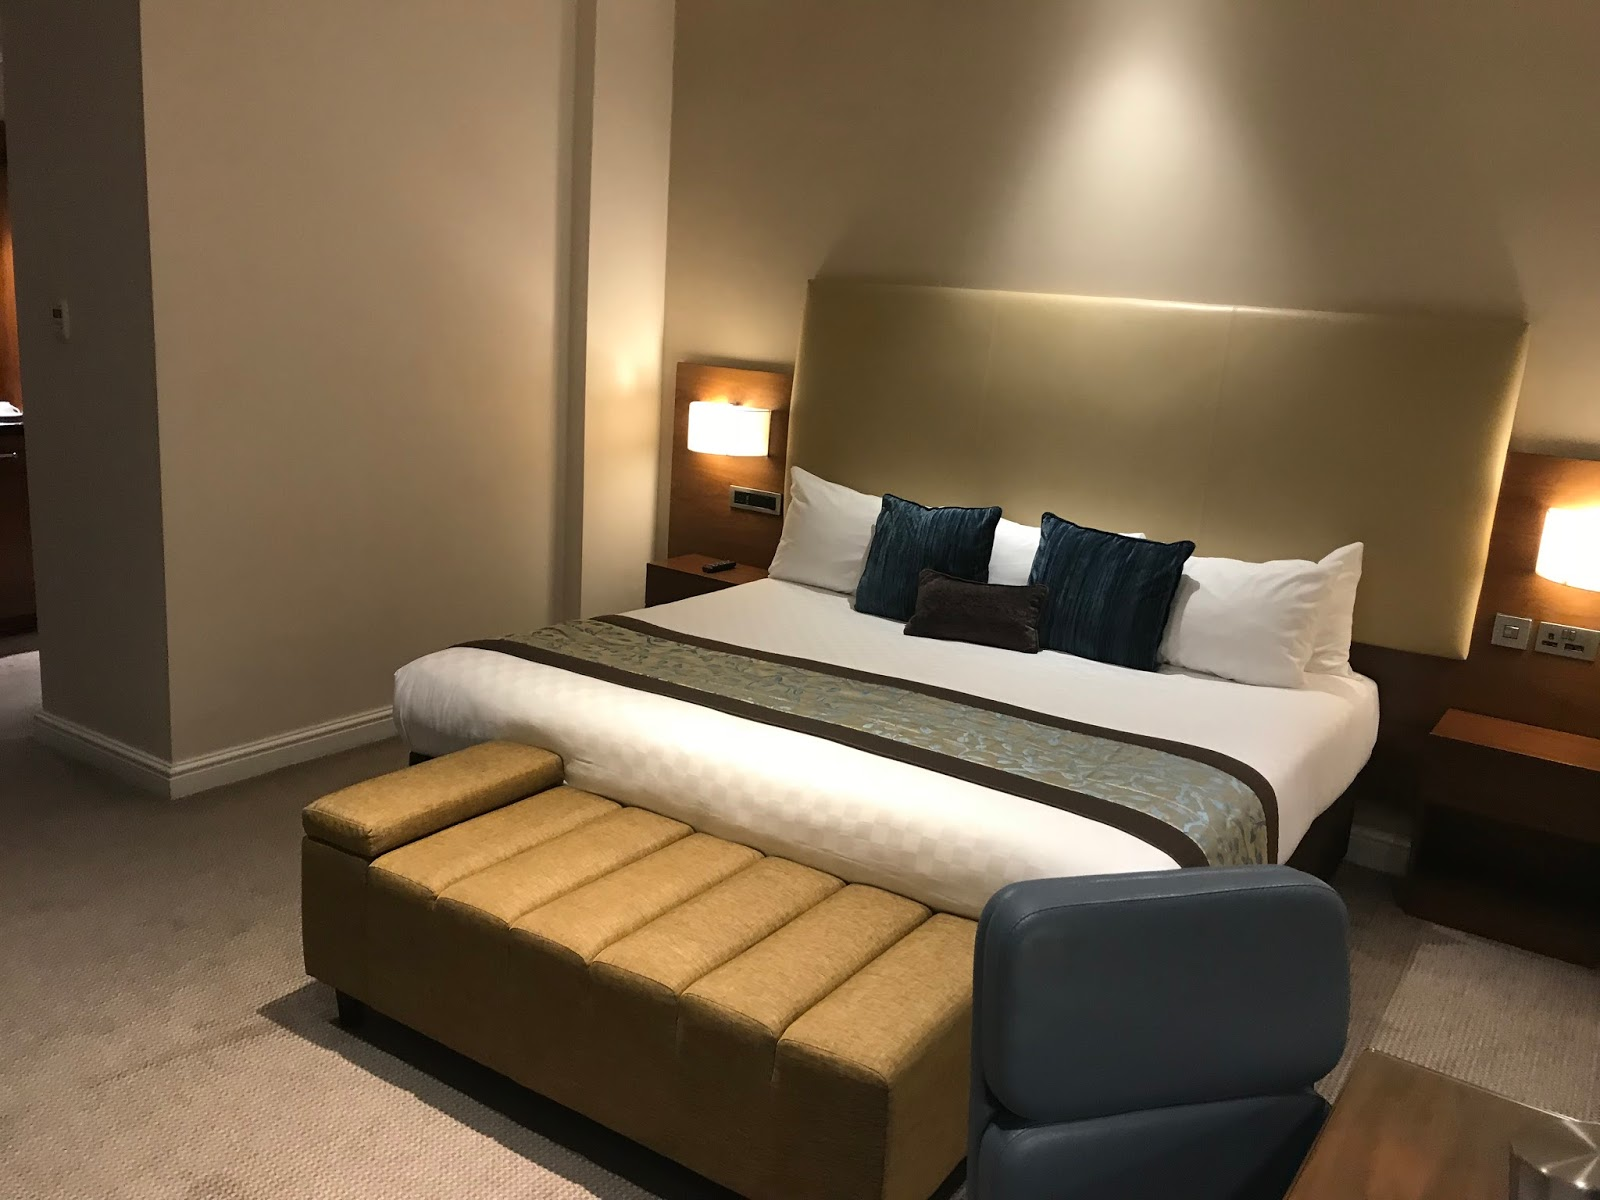 i was booked into every hotel piccadilly which is right near piccadilly circus tube station and possibly one of the best central locations you could find